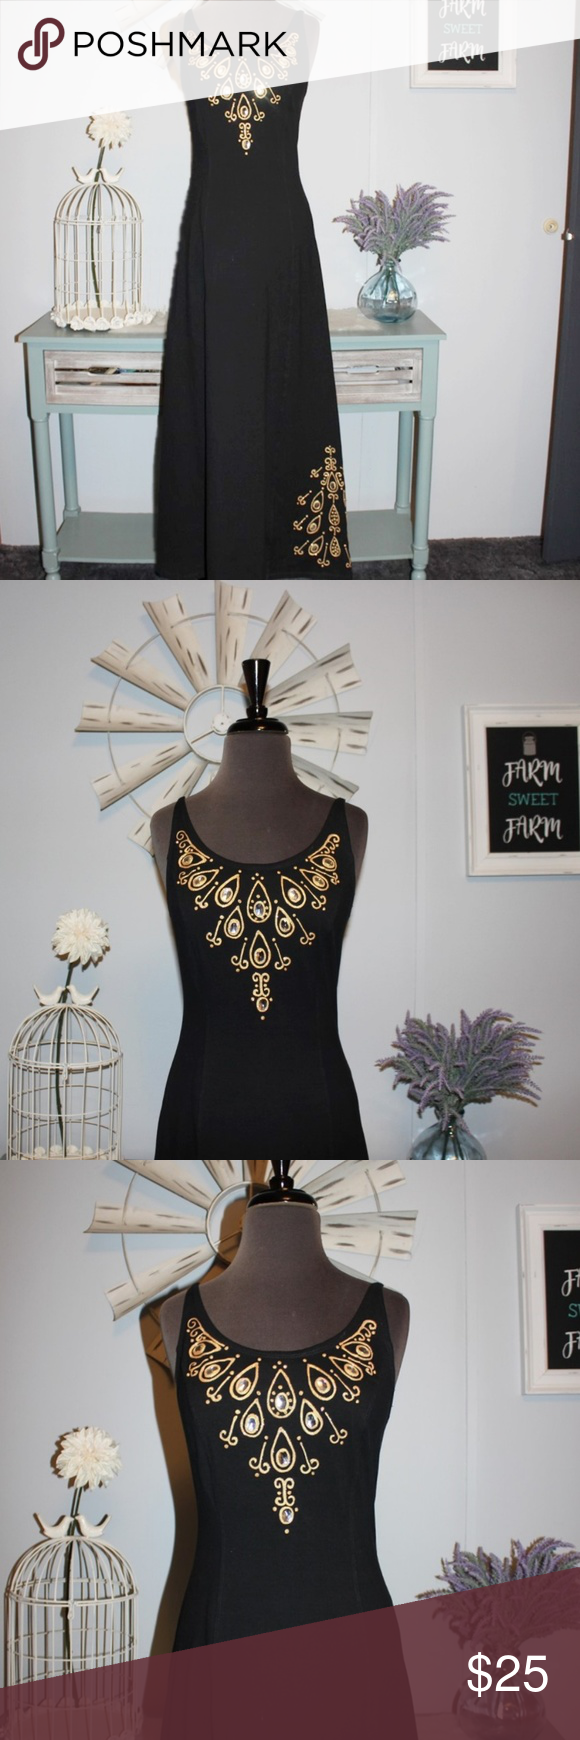 Georgiann Black Dress Hand Painted Gold Accents Georgiann Black Dress With Hand Painted Gold Glittery Accents By Typhoons By Clothes Design Fashion Black Dress [ 1740 x 580 Pixel ]